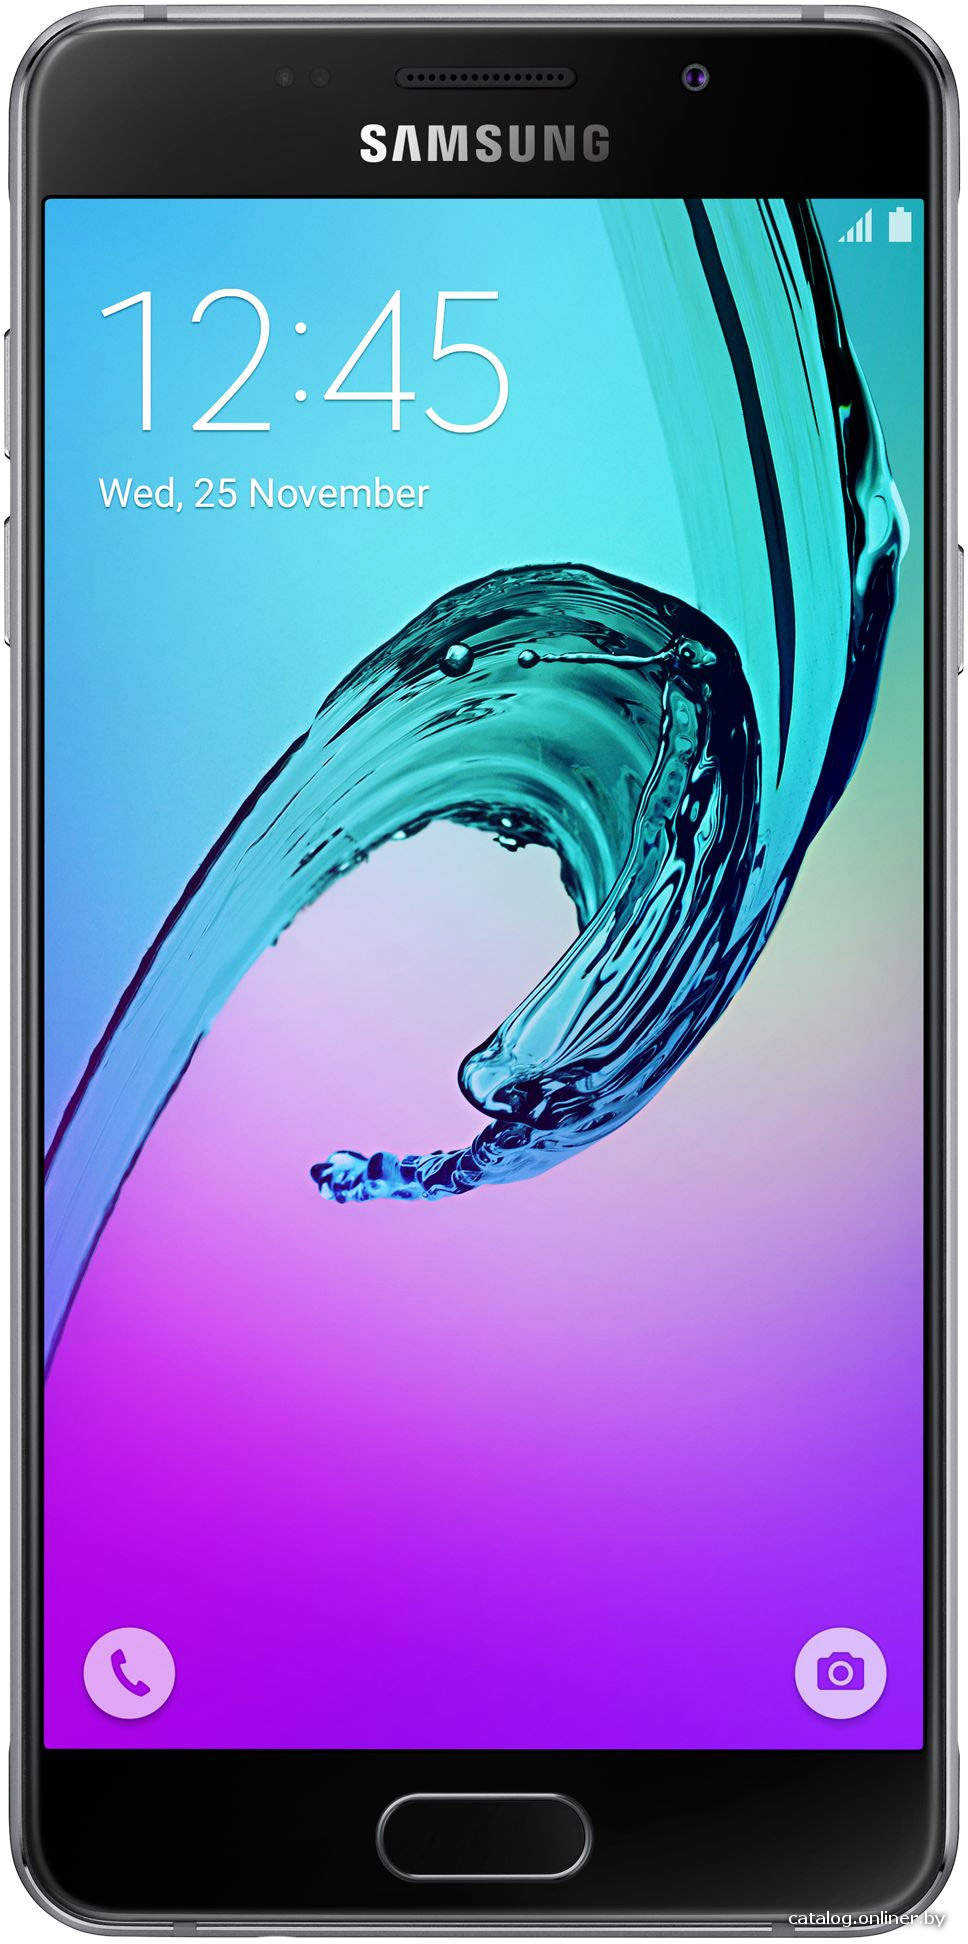 "Смартфон Samsung Galaxy A5 (2016) SM-A510F-DS Black (1.6GHz,2GbRAM,5.2""1920x1080,4G+BT+WiFi+GPS,16Gb+microSD,13Mp,Andr)"